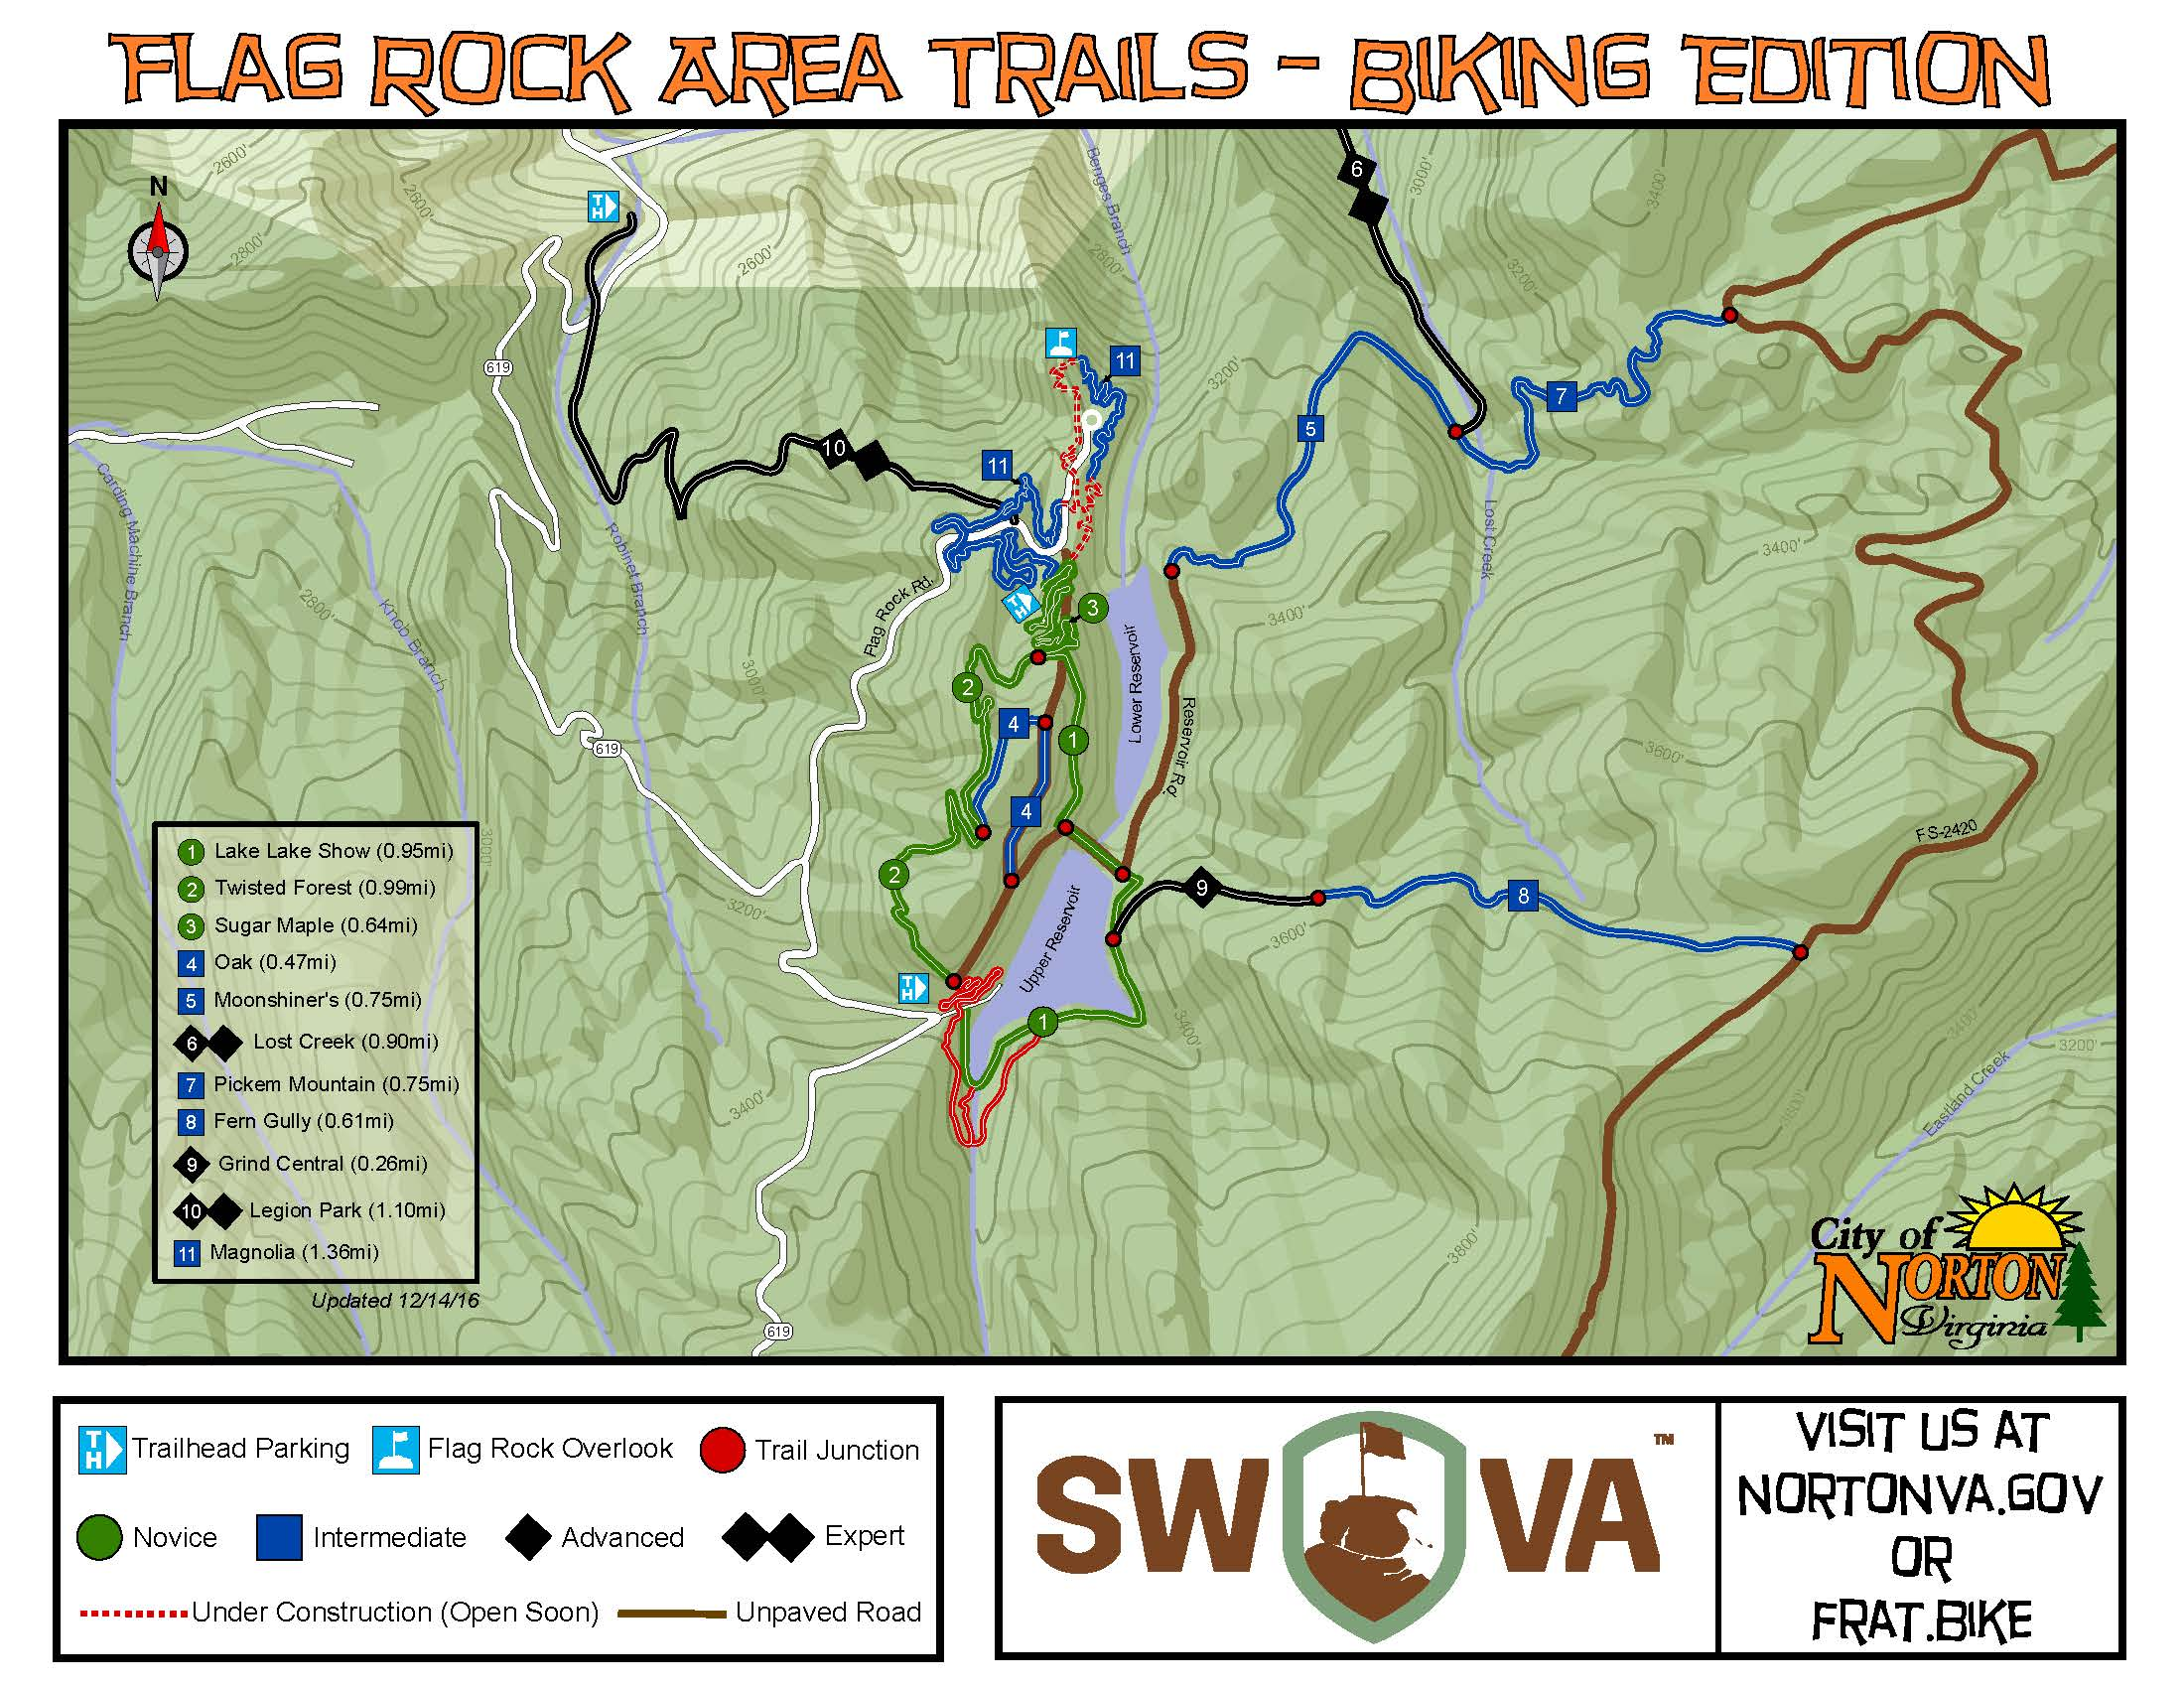 Map of Flag Rock Area Trails